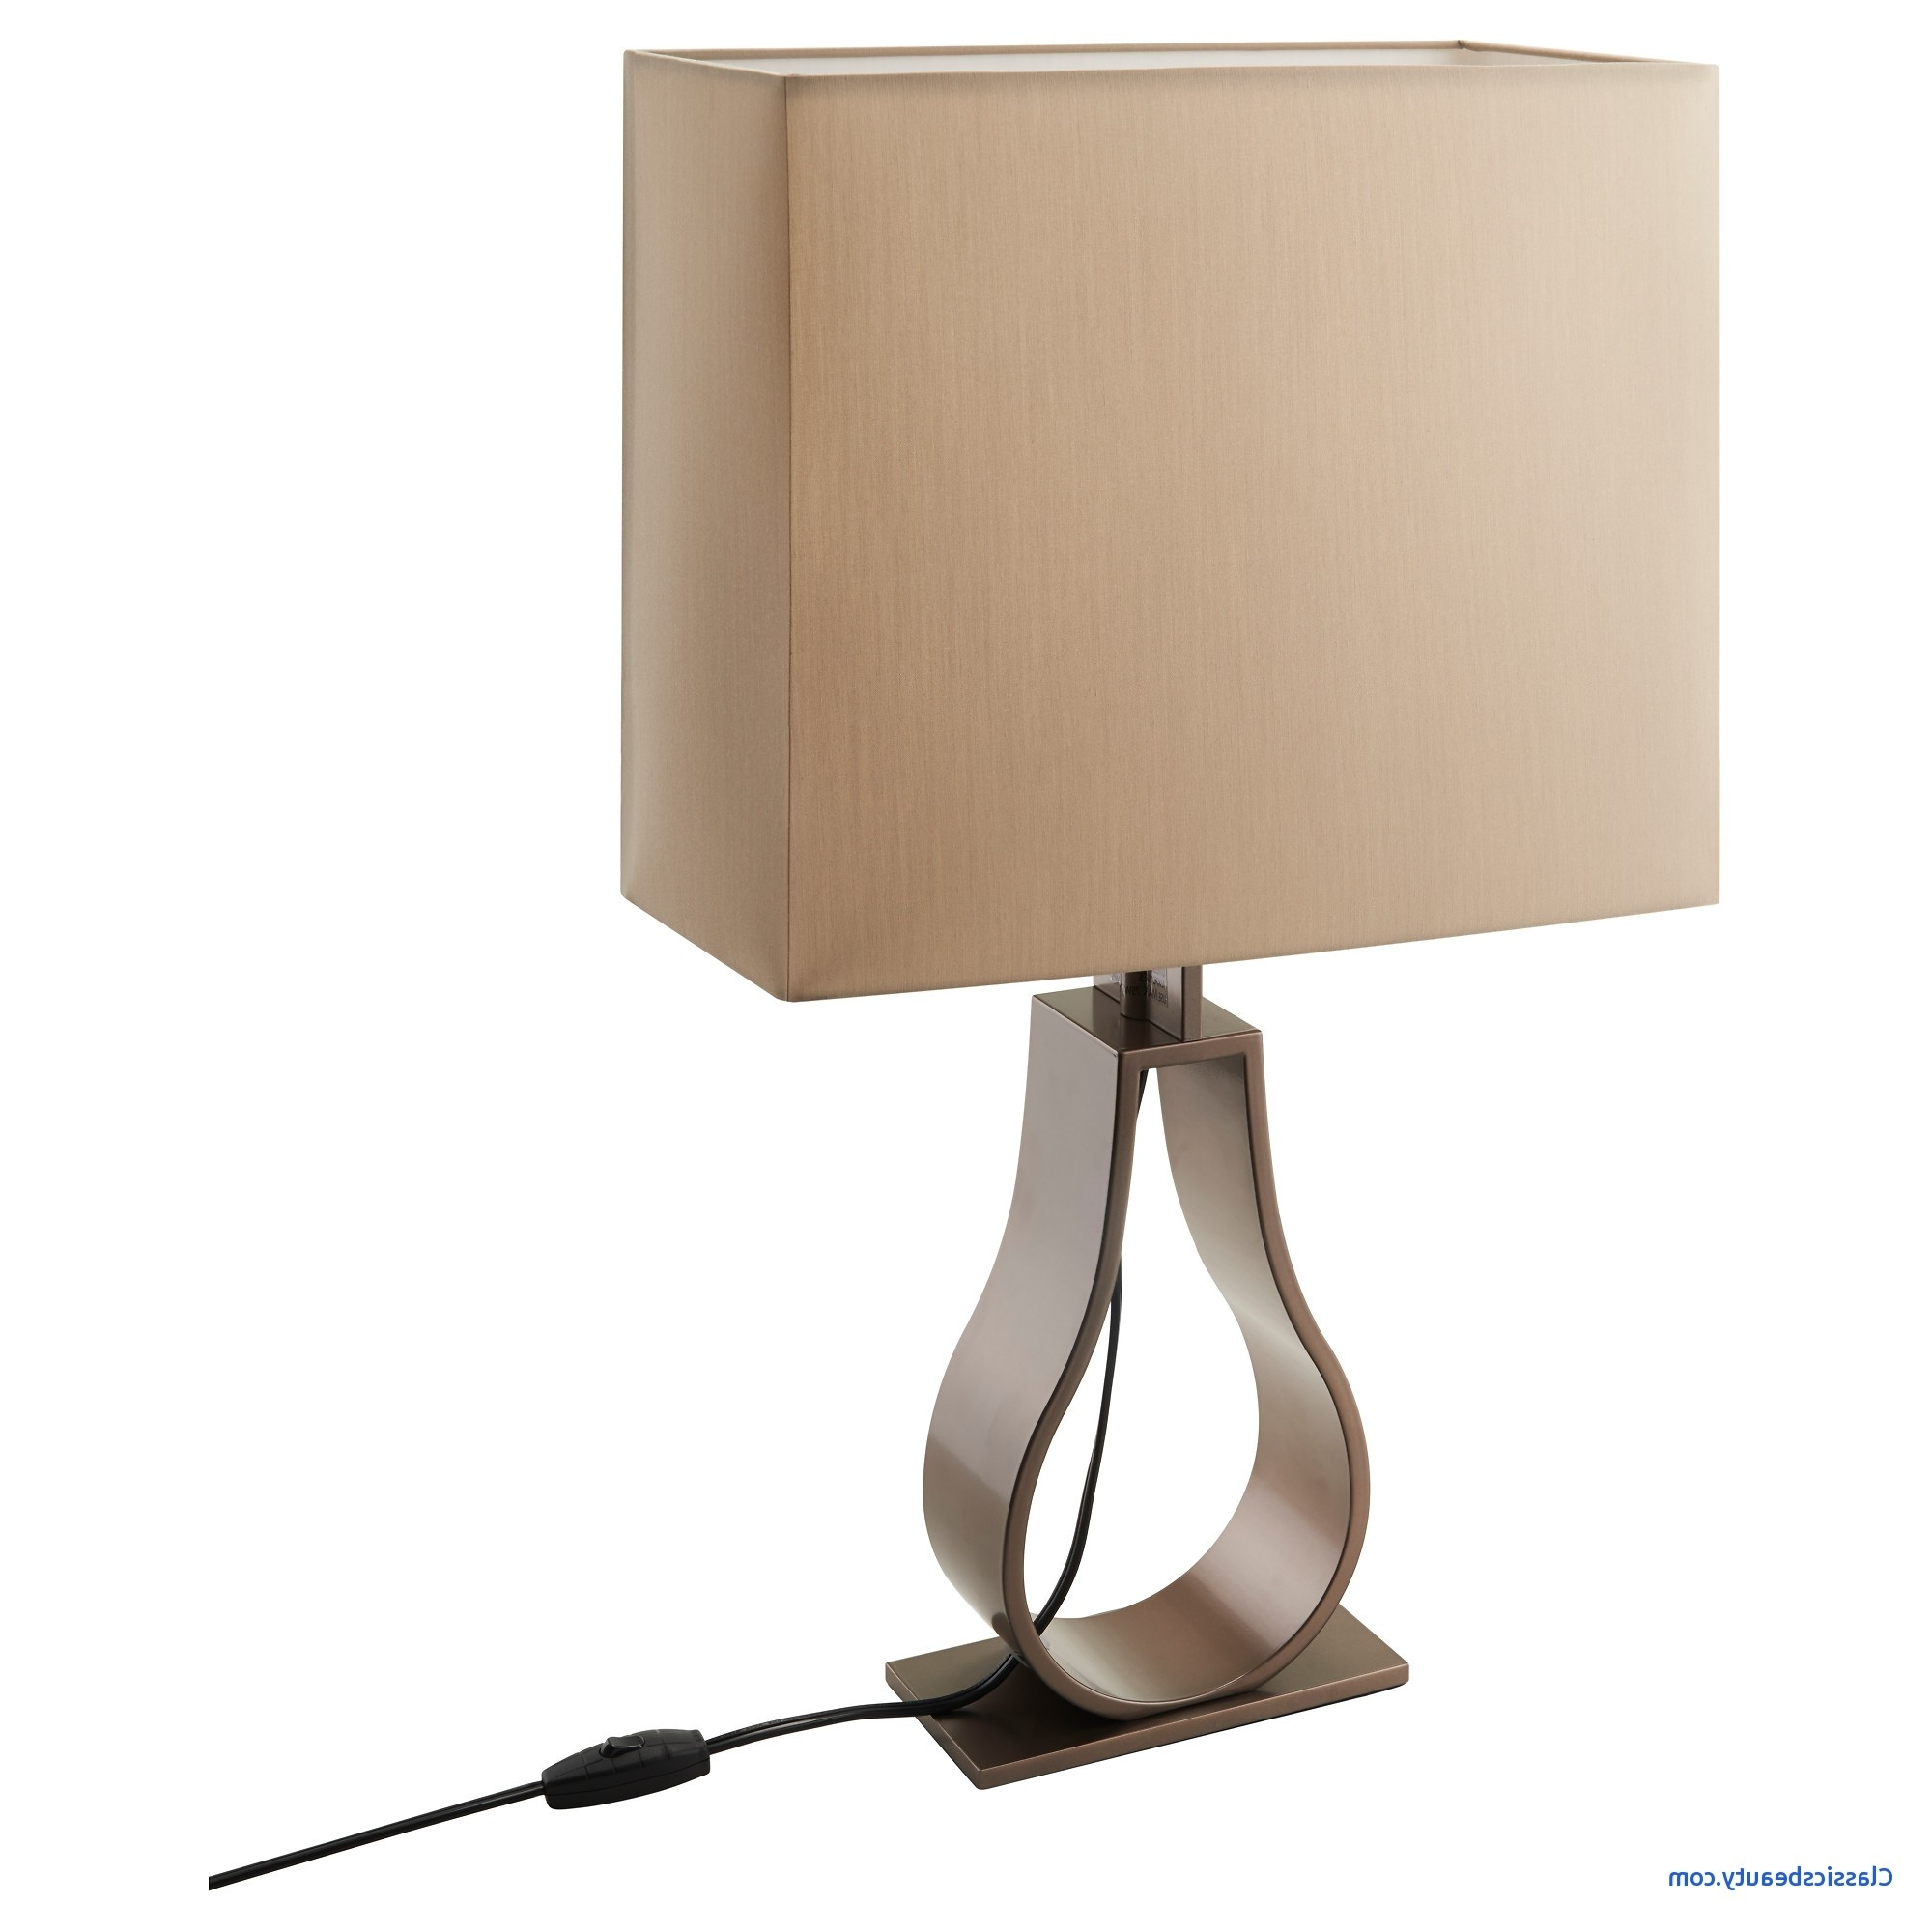 Newest Top 55 Splendid Walmart Floor Lamps Ceramic Table For Living Room Regarding Walmart Living Room Table Lamps (View 7 of 15)